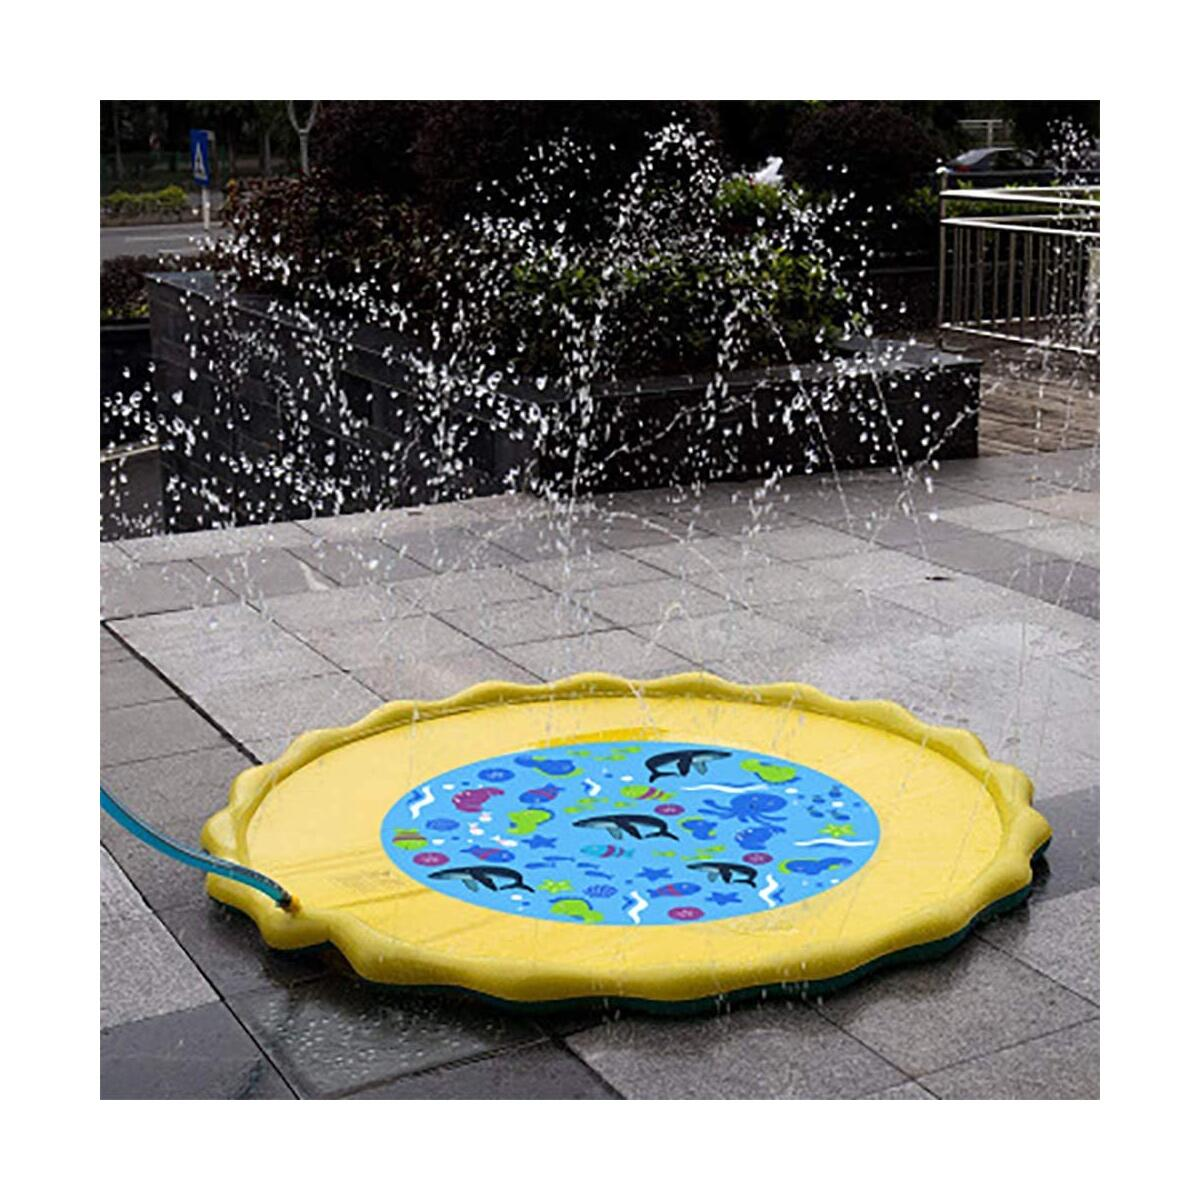 SOWOW Splash Play Mat Outdoor Water Play Sprinklers Summer Fun Backyard Play for Infant and Kids Sprinklers for Outside Splash Pad for Toddler Baby Pool 60